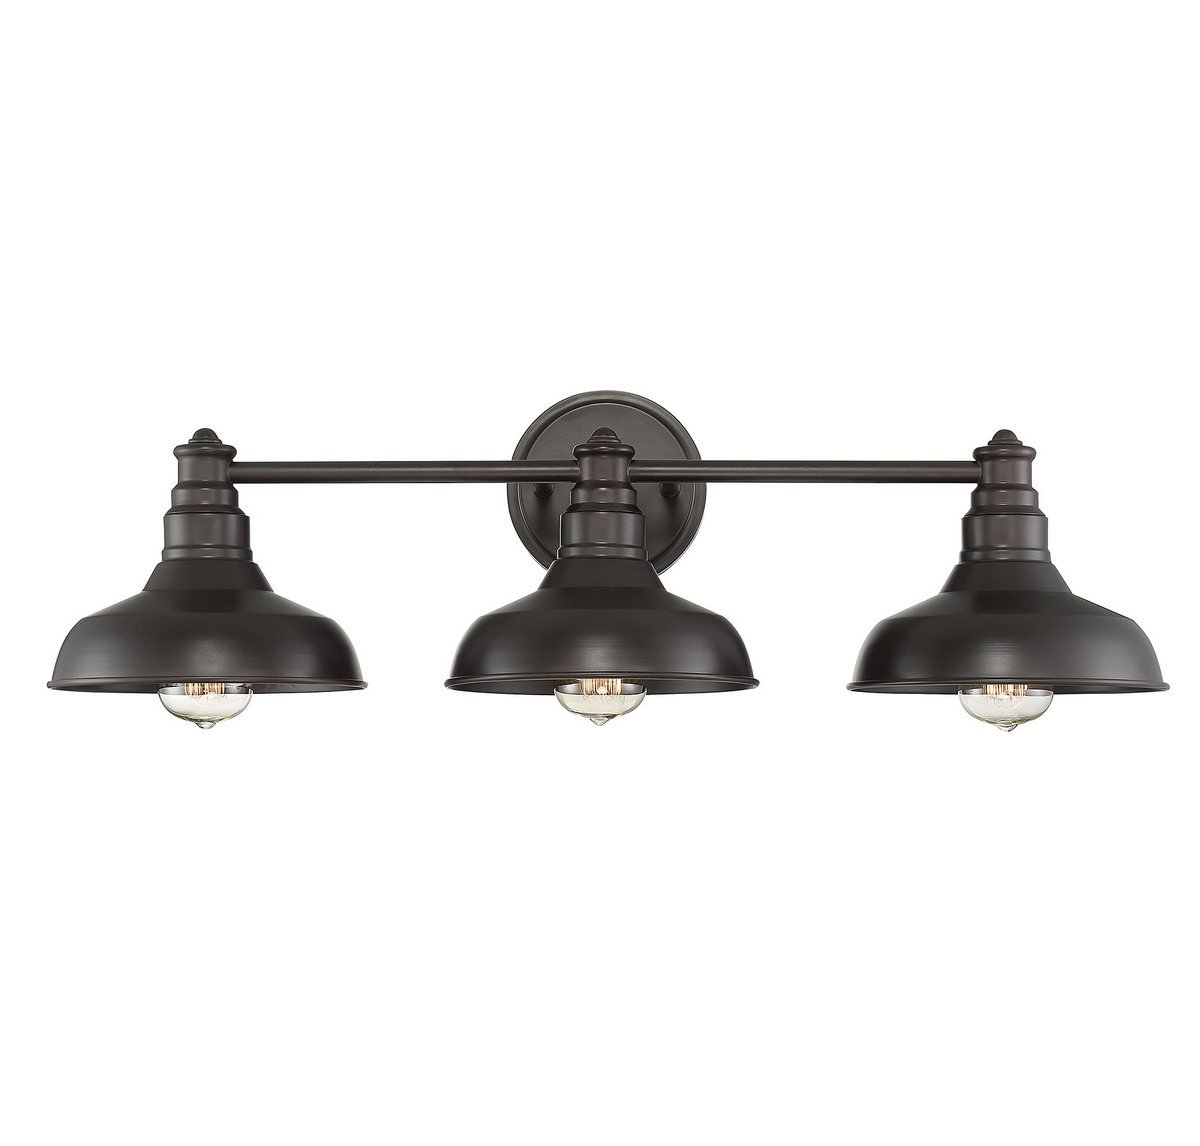 Trade Winds Lighting TW80019ORB Industrial Barn Metal 3 Light Metal Shade Bath Vanity Wall Sconce, in Oil Rubbed Bronze